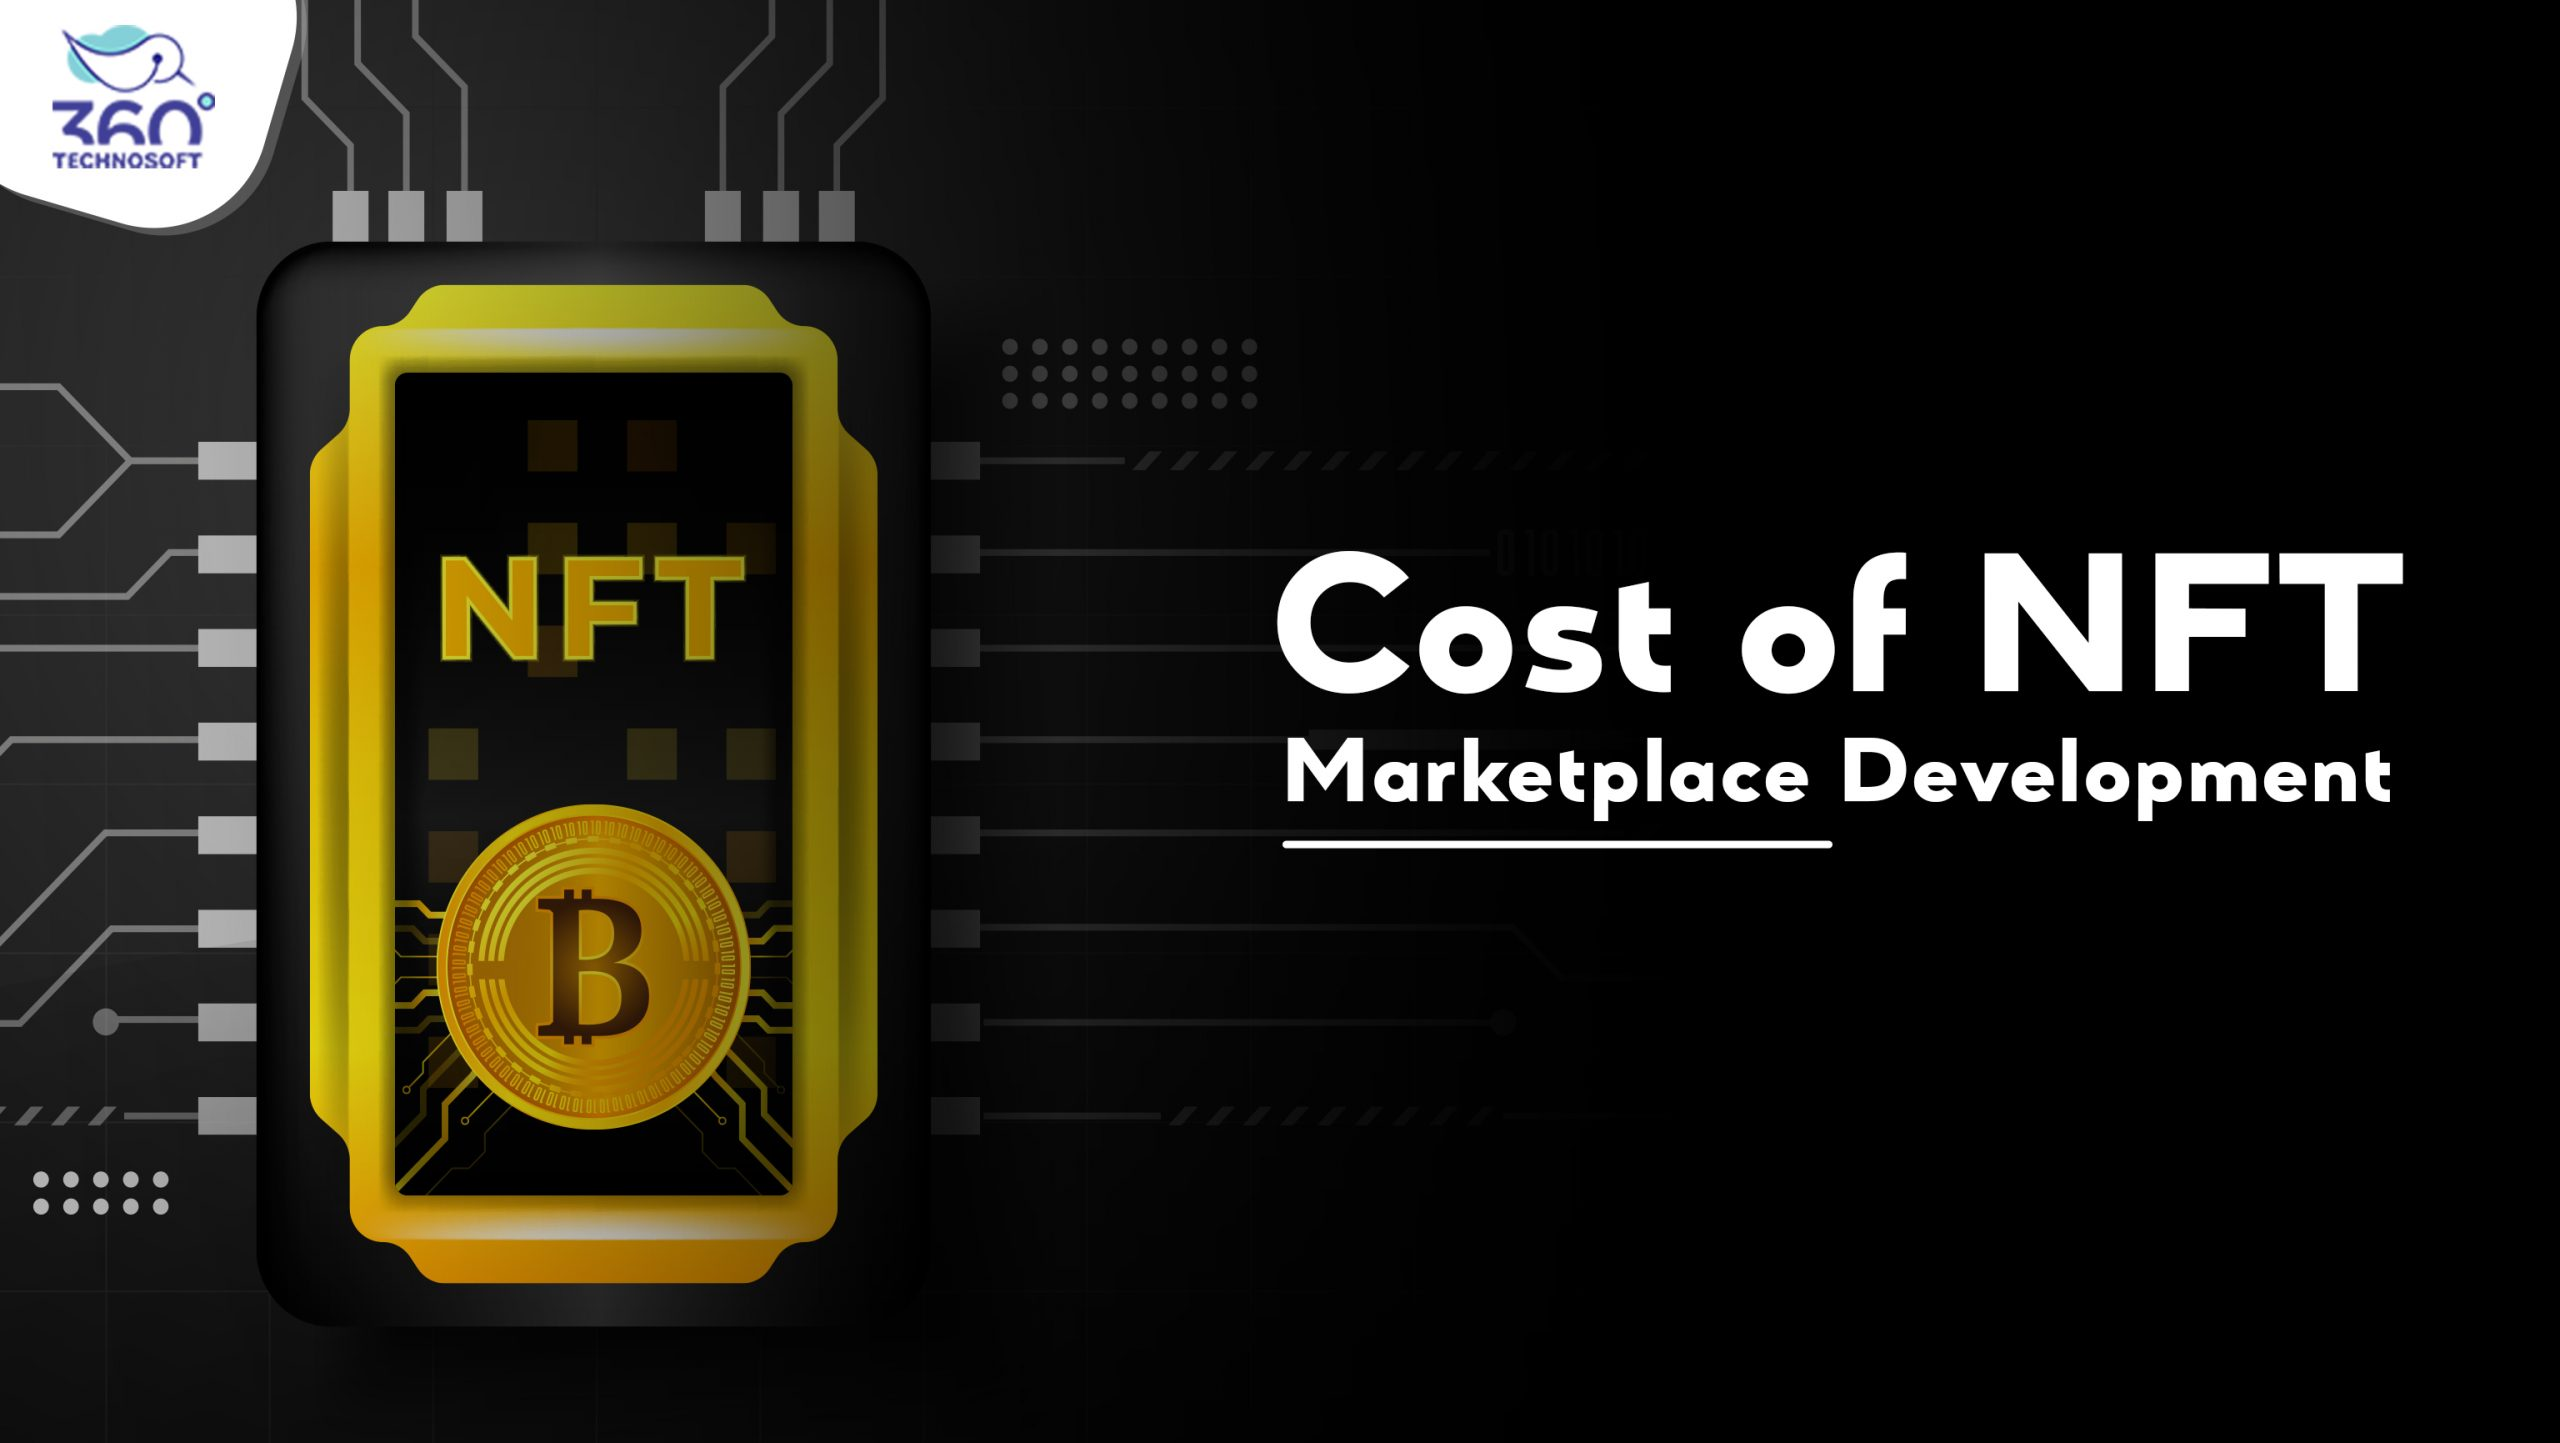 How Much Does NFT Marketplace Development Platforms Cost? Step-by-step pattern